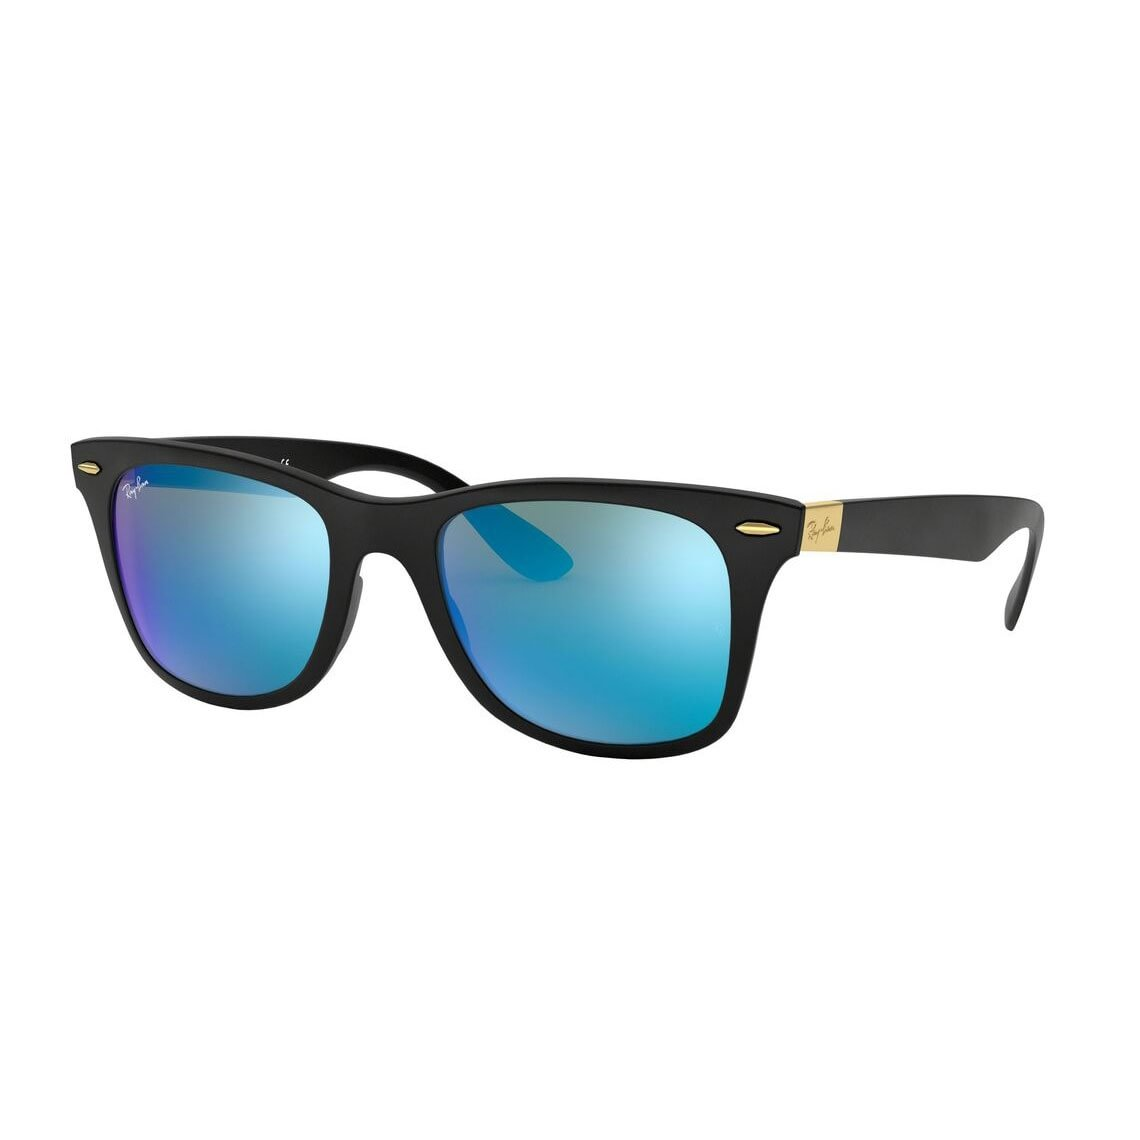 Ray-Ban Wayfarer Liteforce RB4195 631855 52